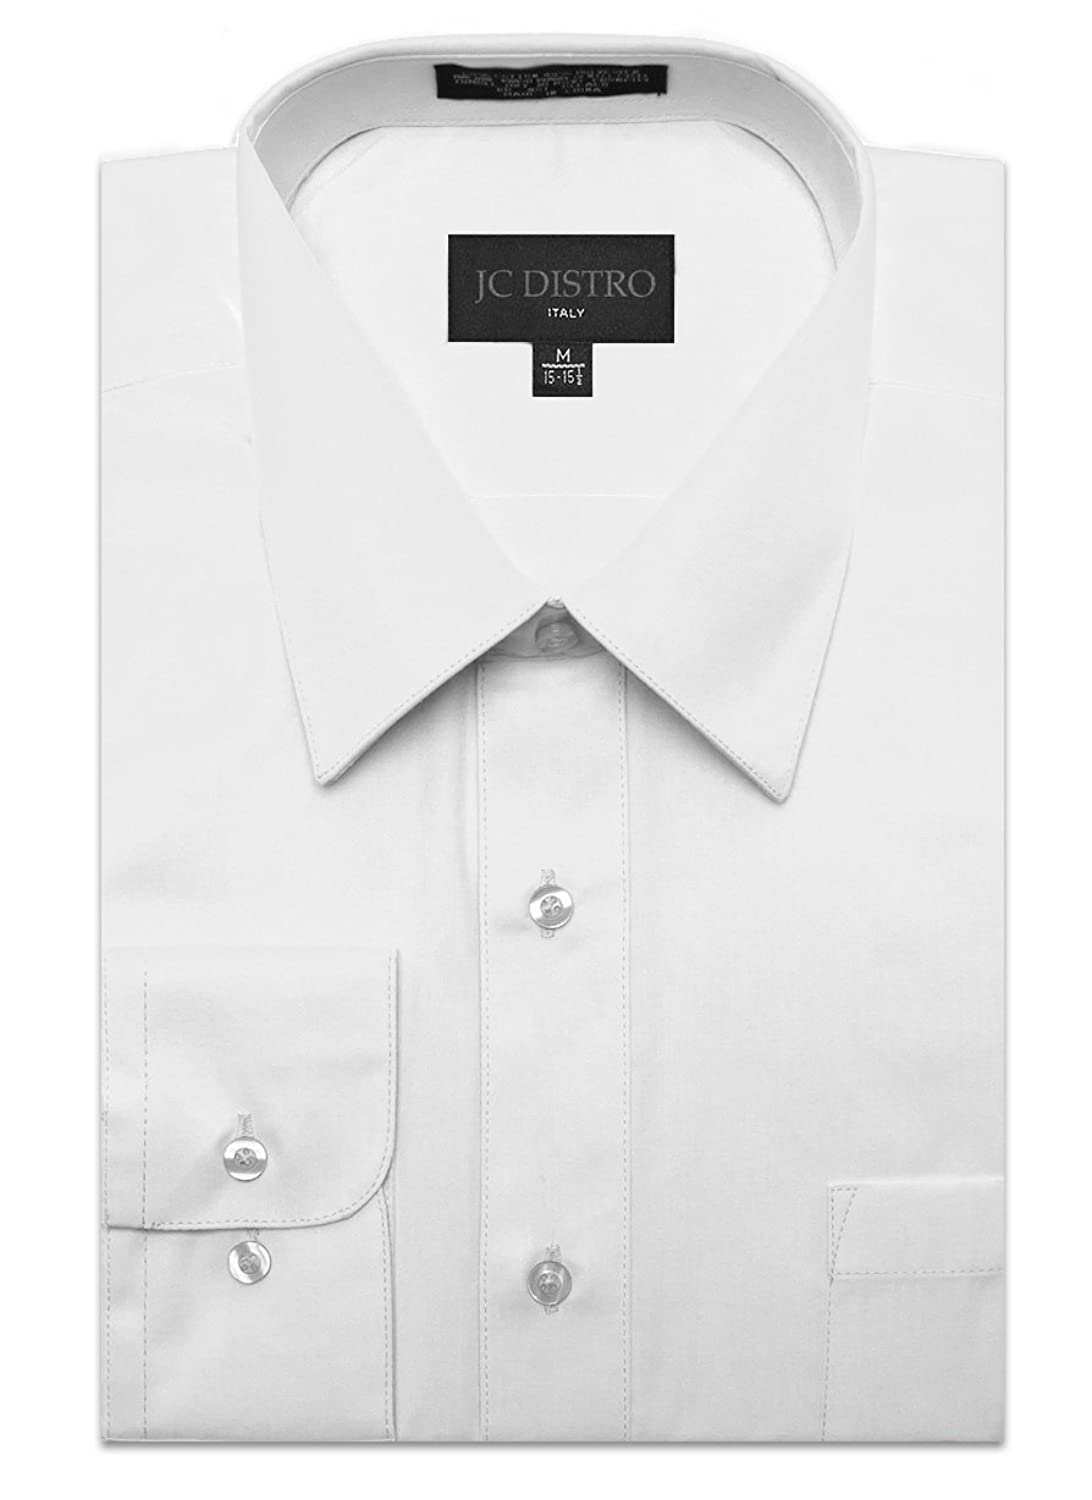 JC DISTRO Mens Regular Fit Dress Shirt w/Reversible Cuff (Big Sizes Available)